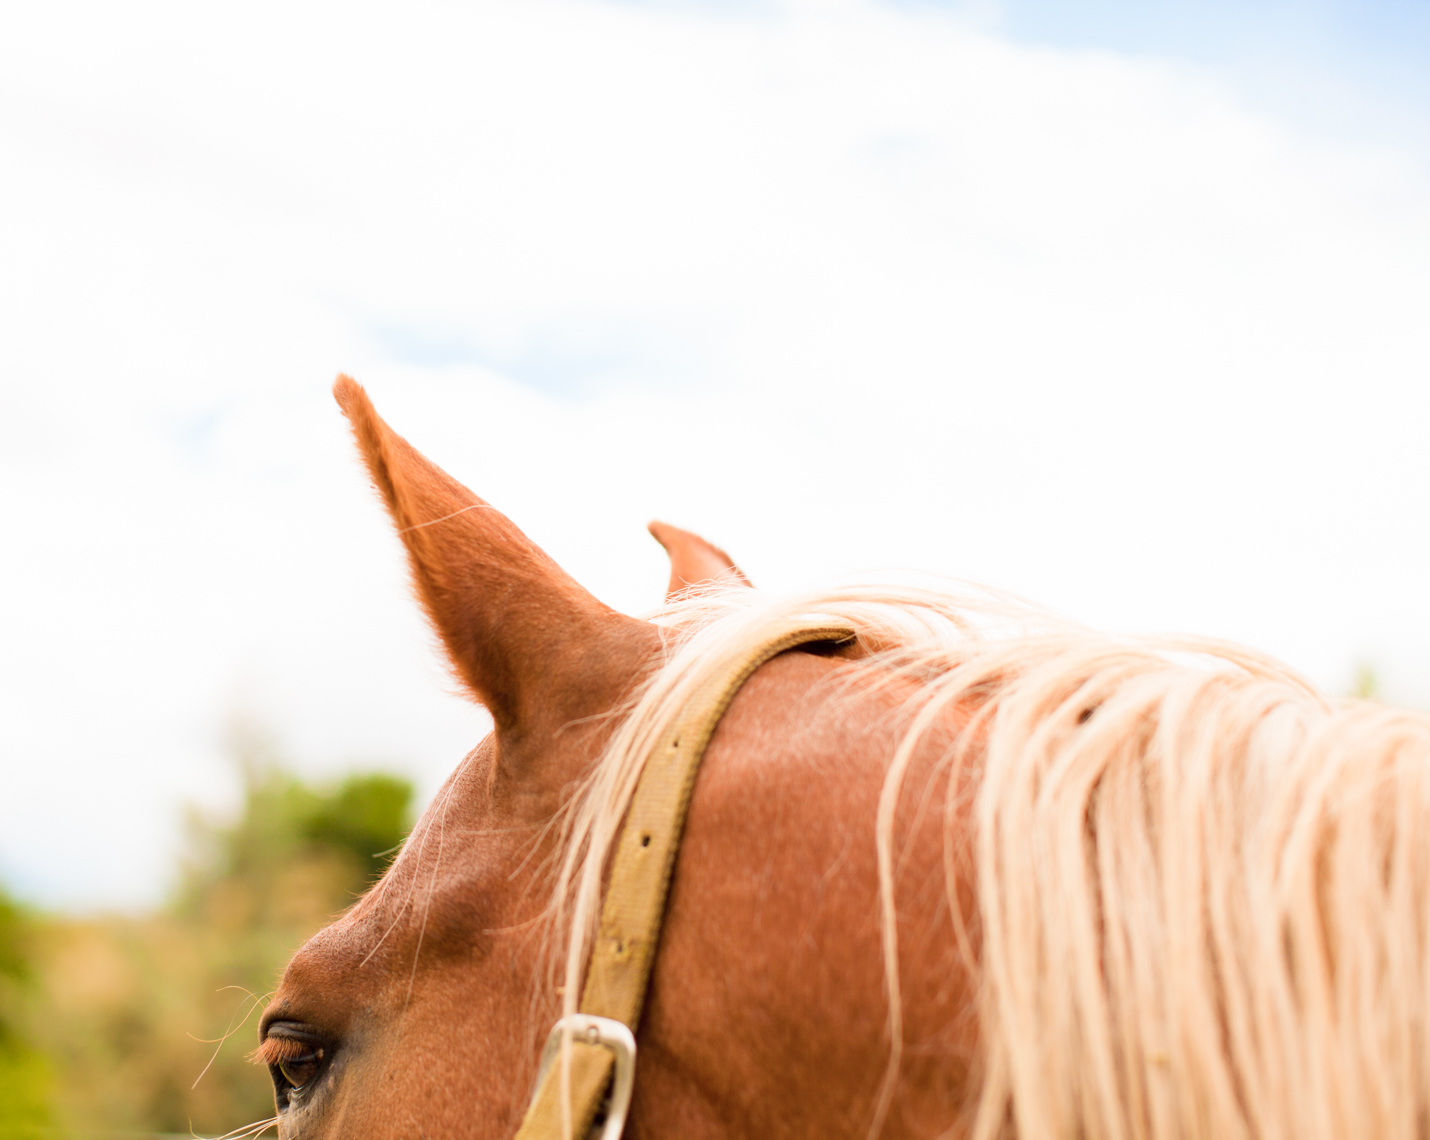 IMAGE OF HORSE WITH BLONDE HAIR | TOSCA RADIGONDA PHOTOGRAPHY